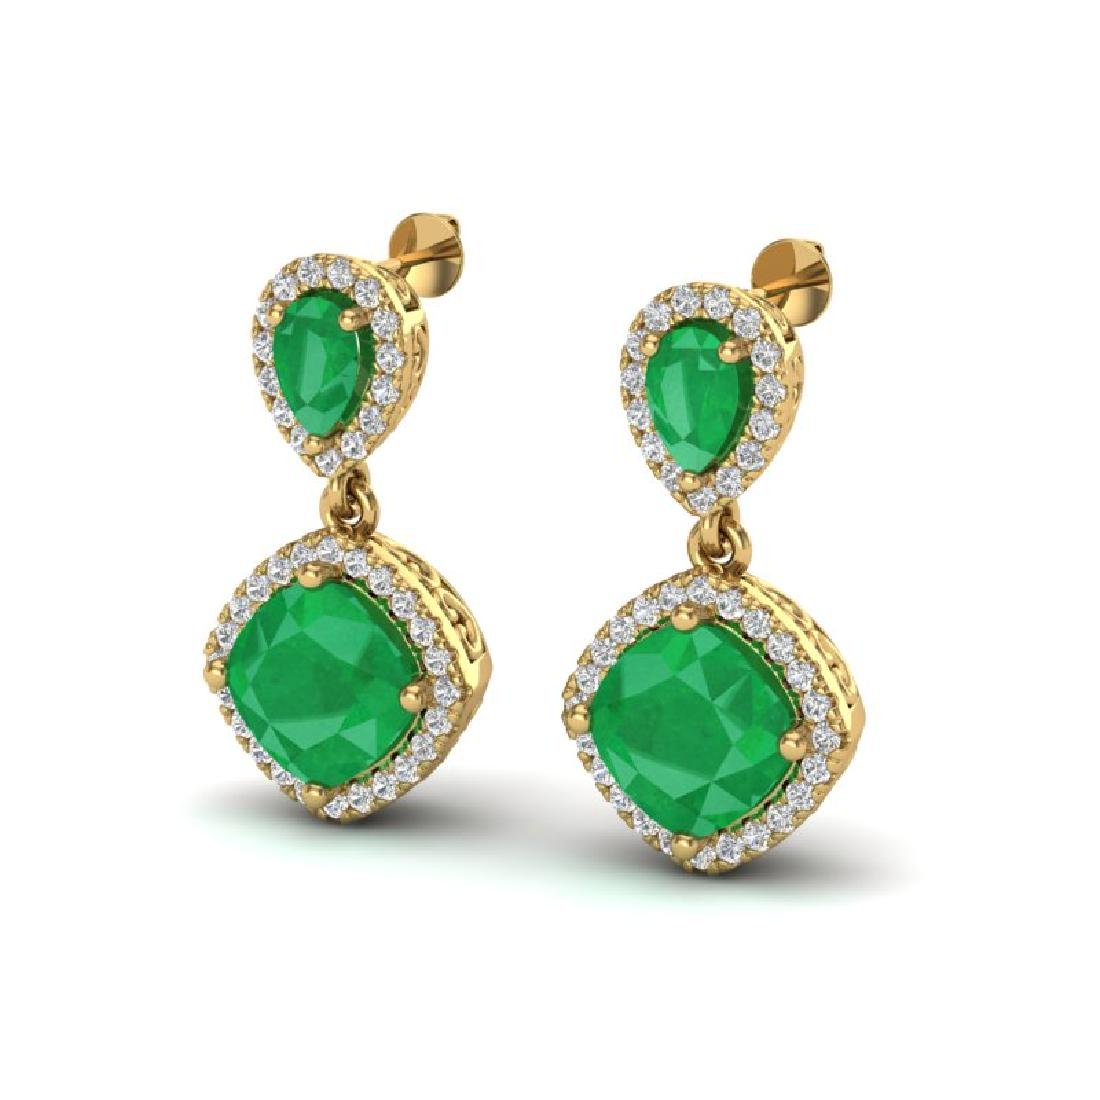 7 CTW Emerald & Micro Pave VS/SI Diamond Earrings